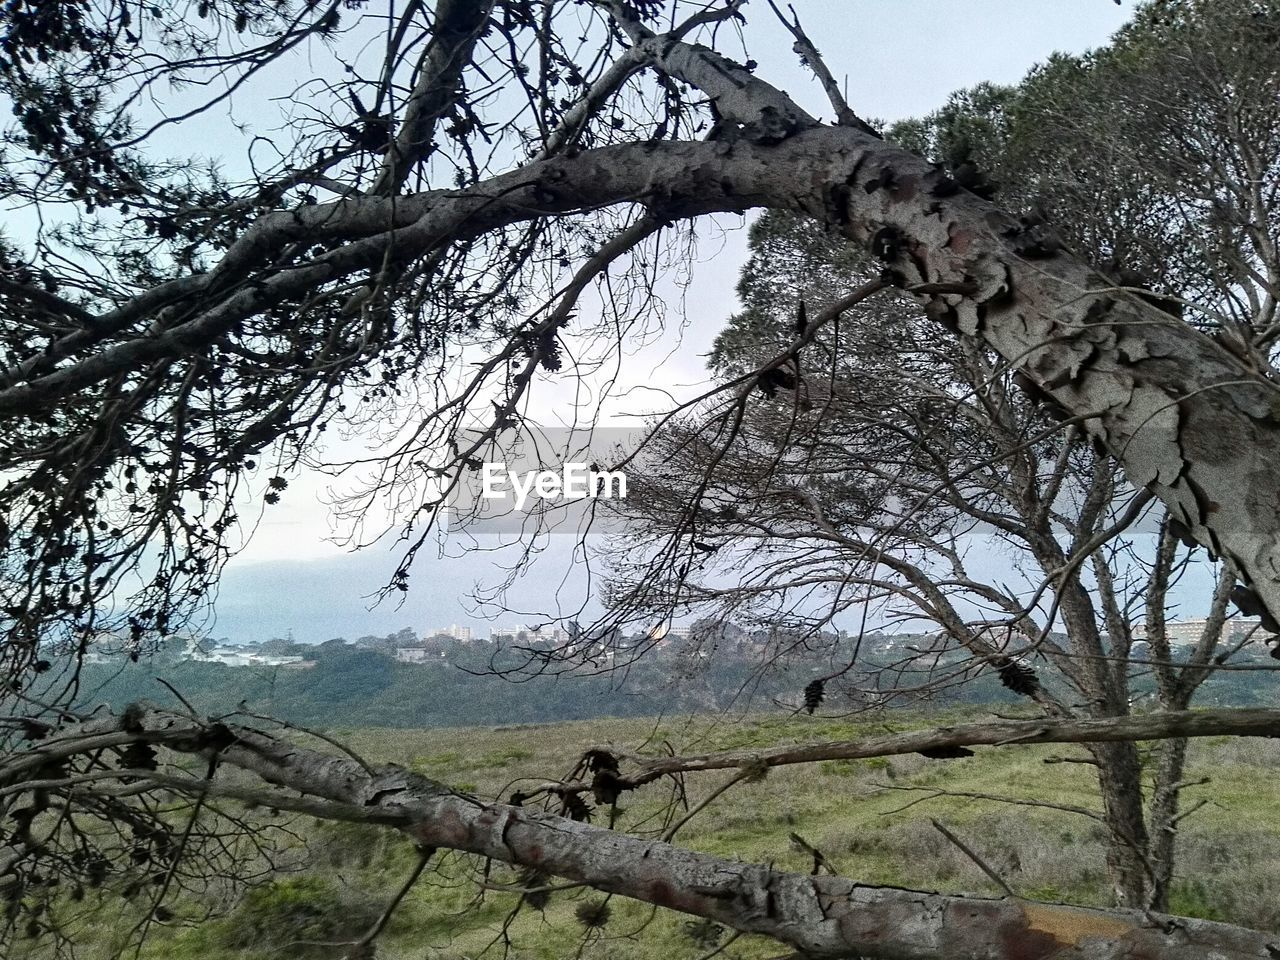 tree, branch, nature, bare tree, low angle view, day, sky, dead plant, outdoors, beauty in nature, no people, tranquility, tranquil scene, growth, landscape, dead tree, scenics, forest, tree trunk, animal themes, bird of prey